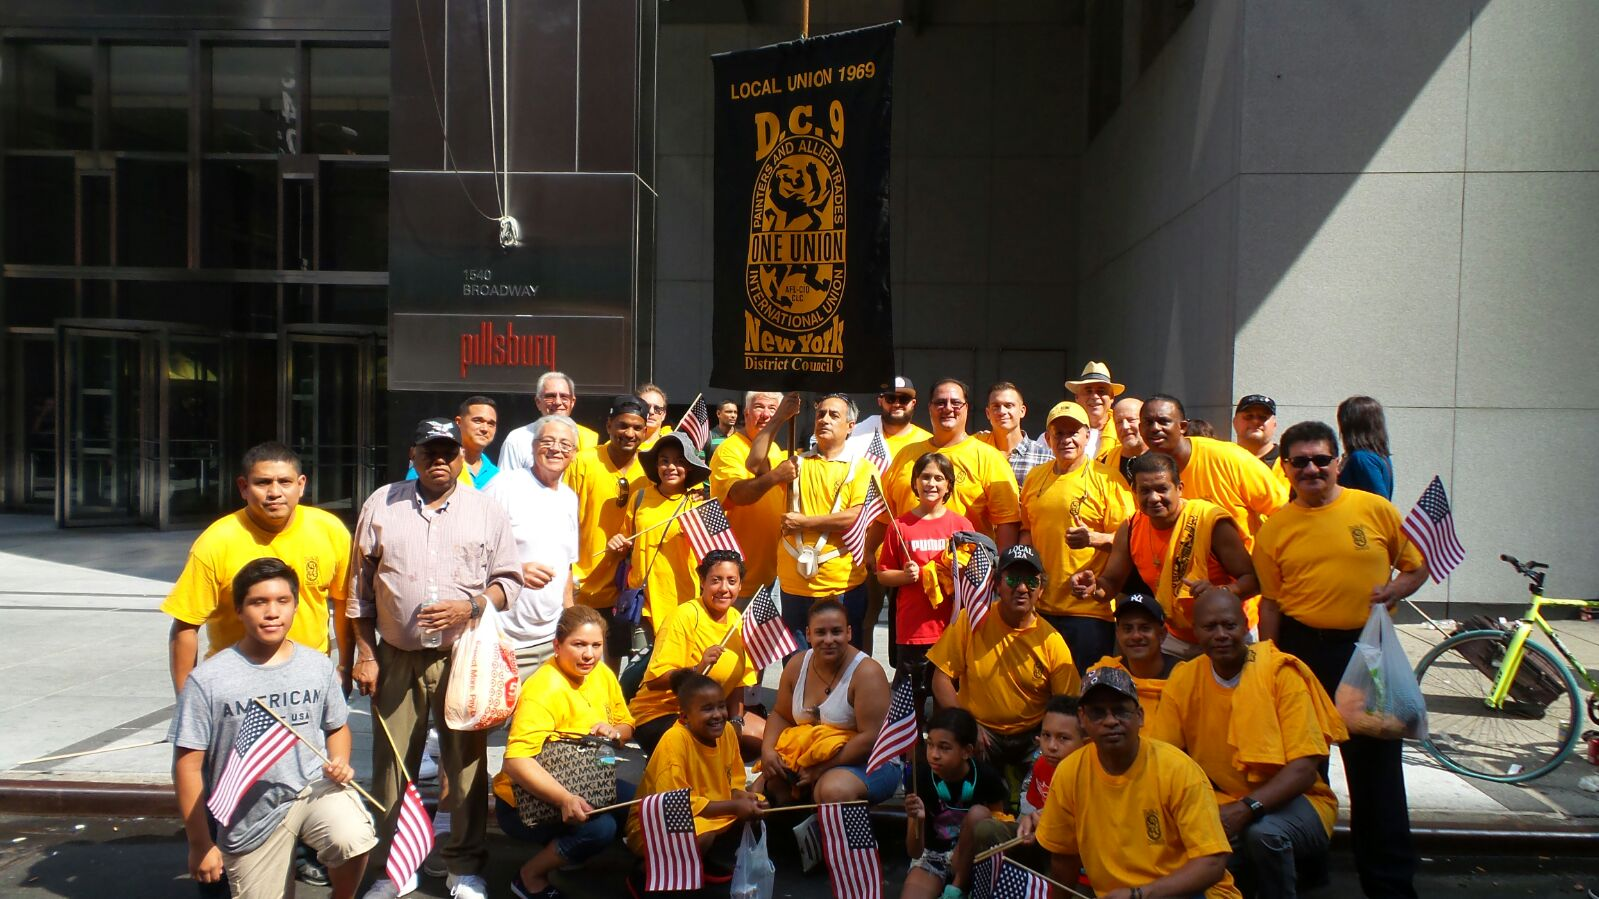 District Council 9 members and their families pose for the camera at the Labor Day Parade in New York City.